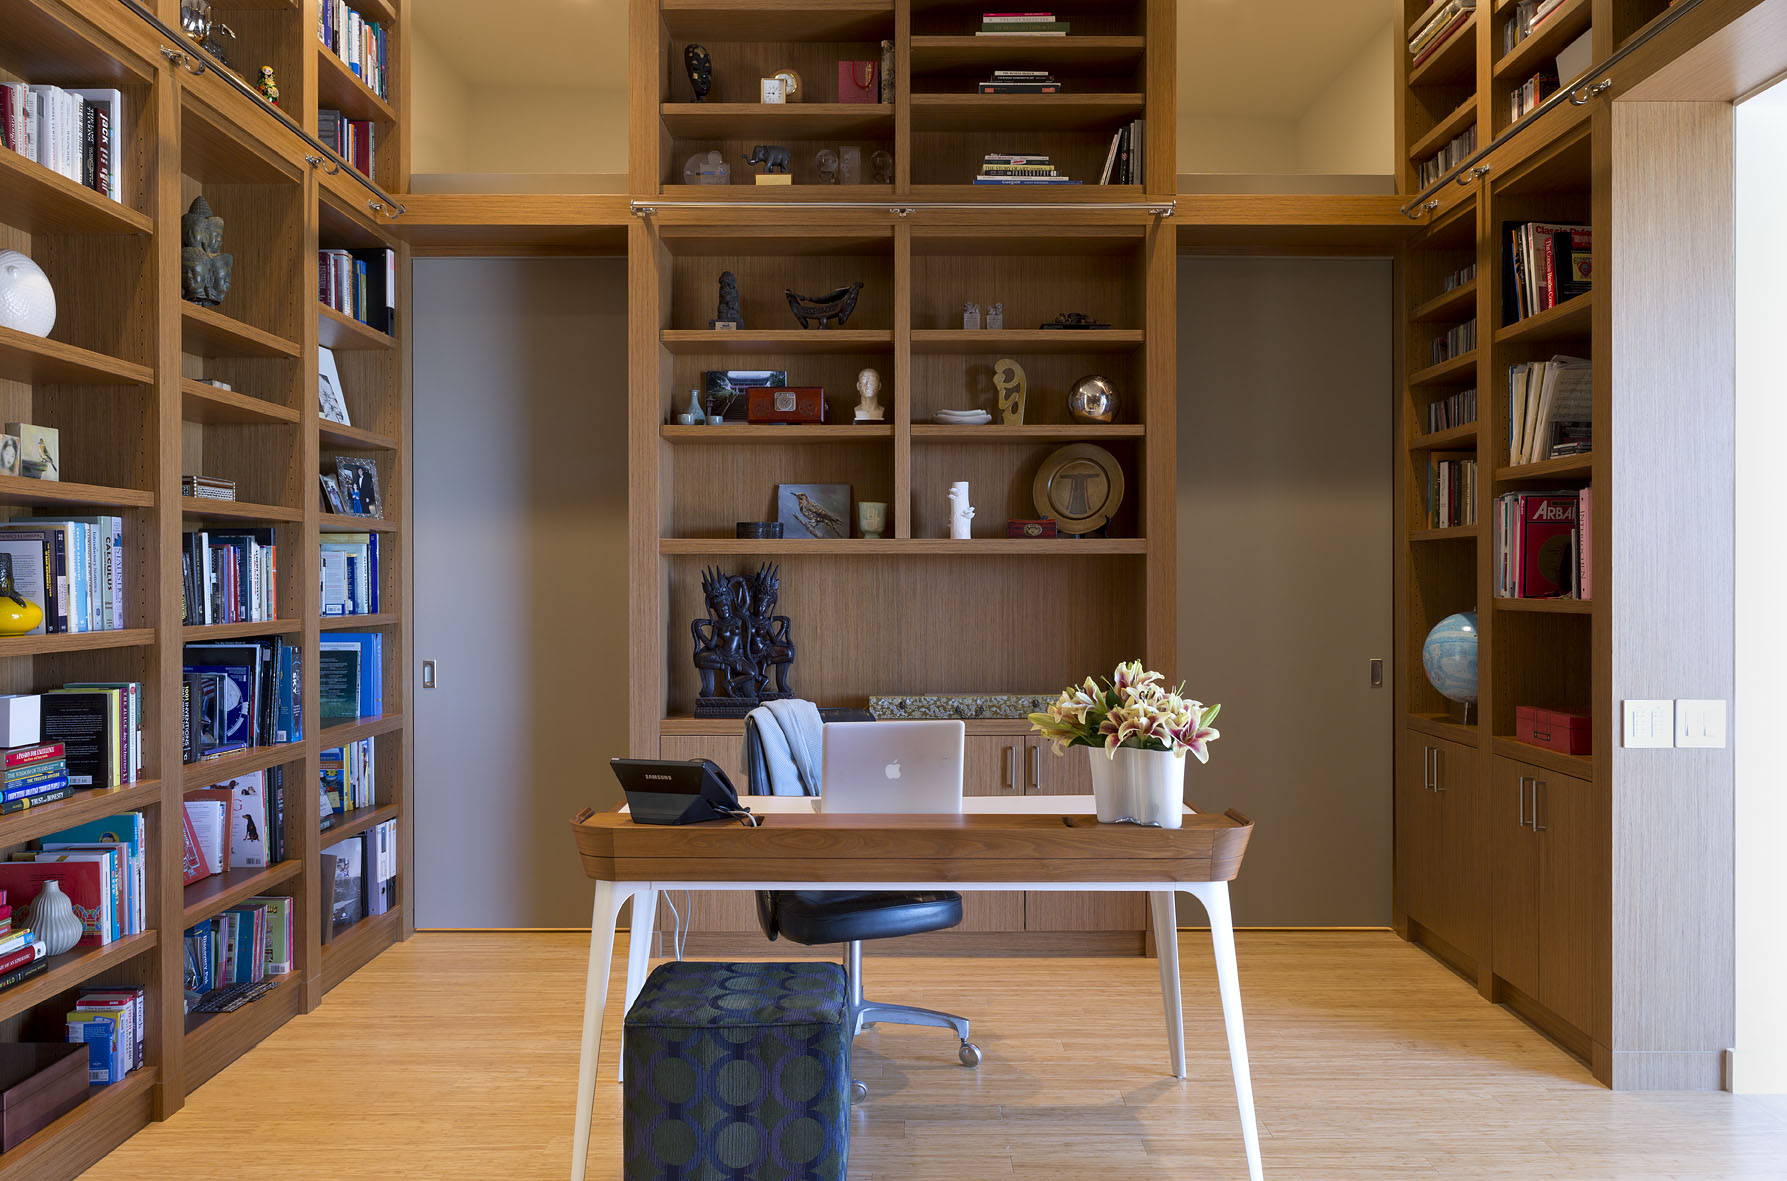 The owner's library also serves as a transition space into the master suite.